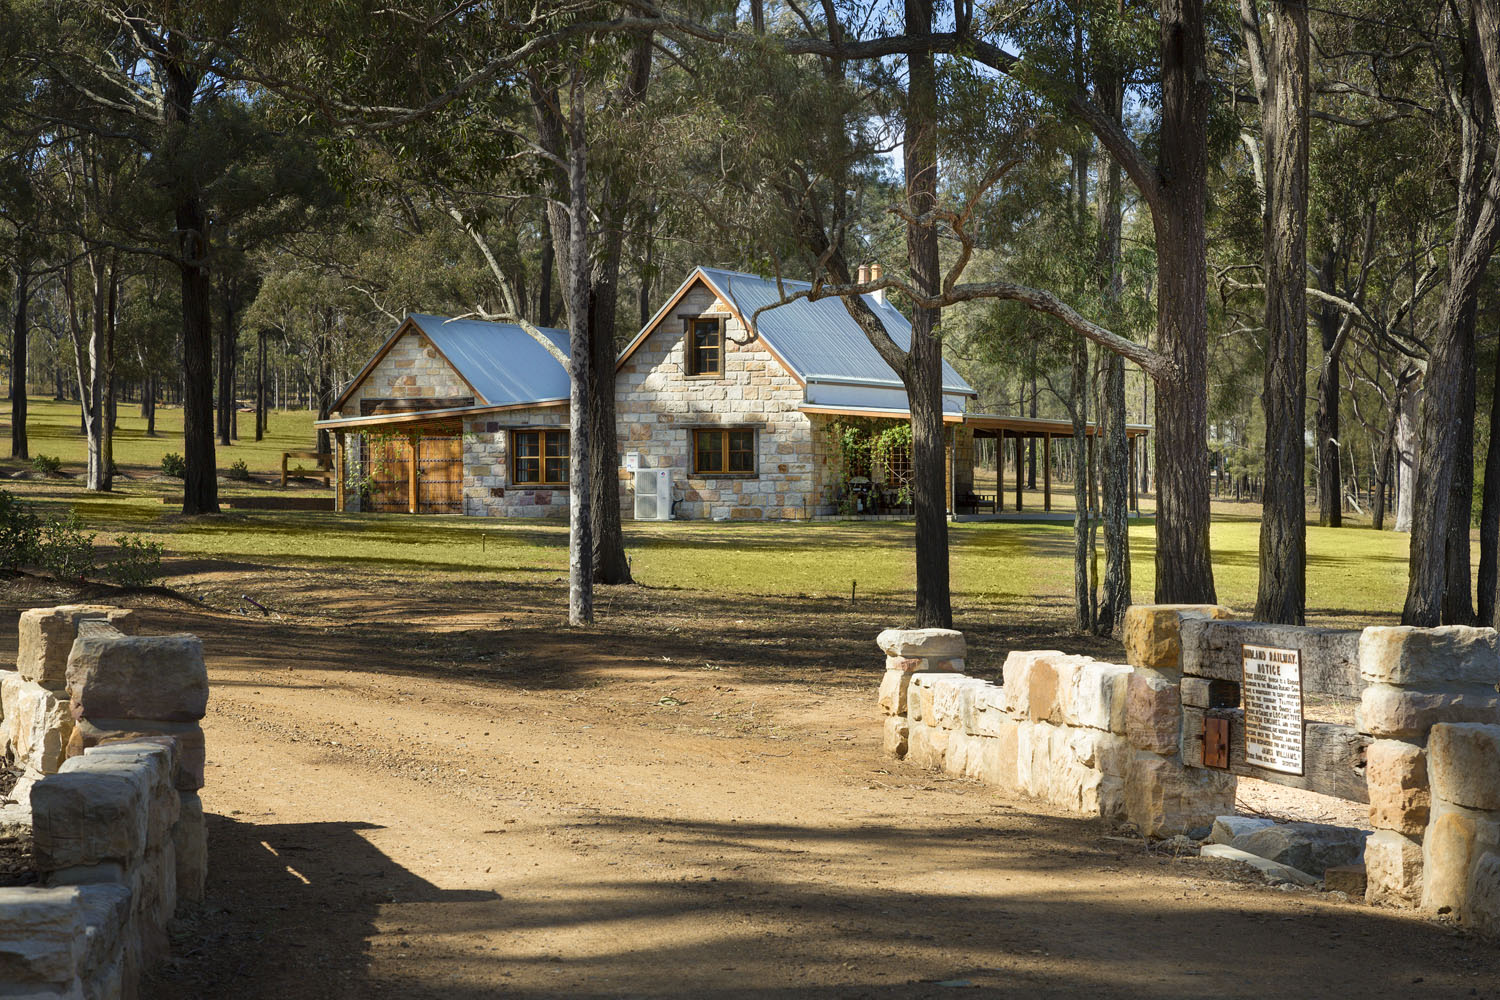 20180808-_E5A5595_575_Hermitage_Rd_Pokolbin_Hunter_Valley_Enzo_Cottage.jpg